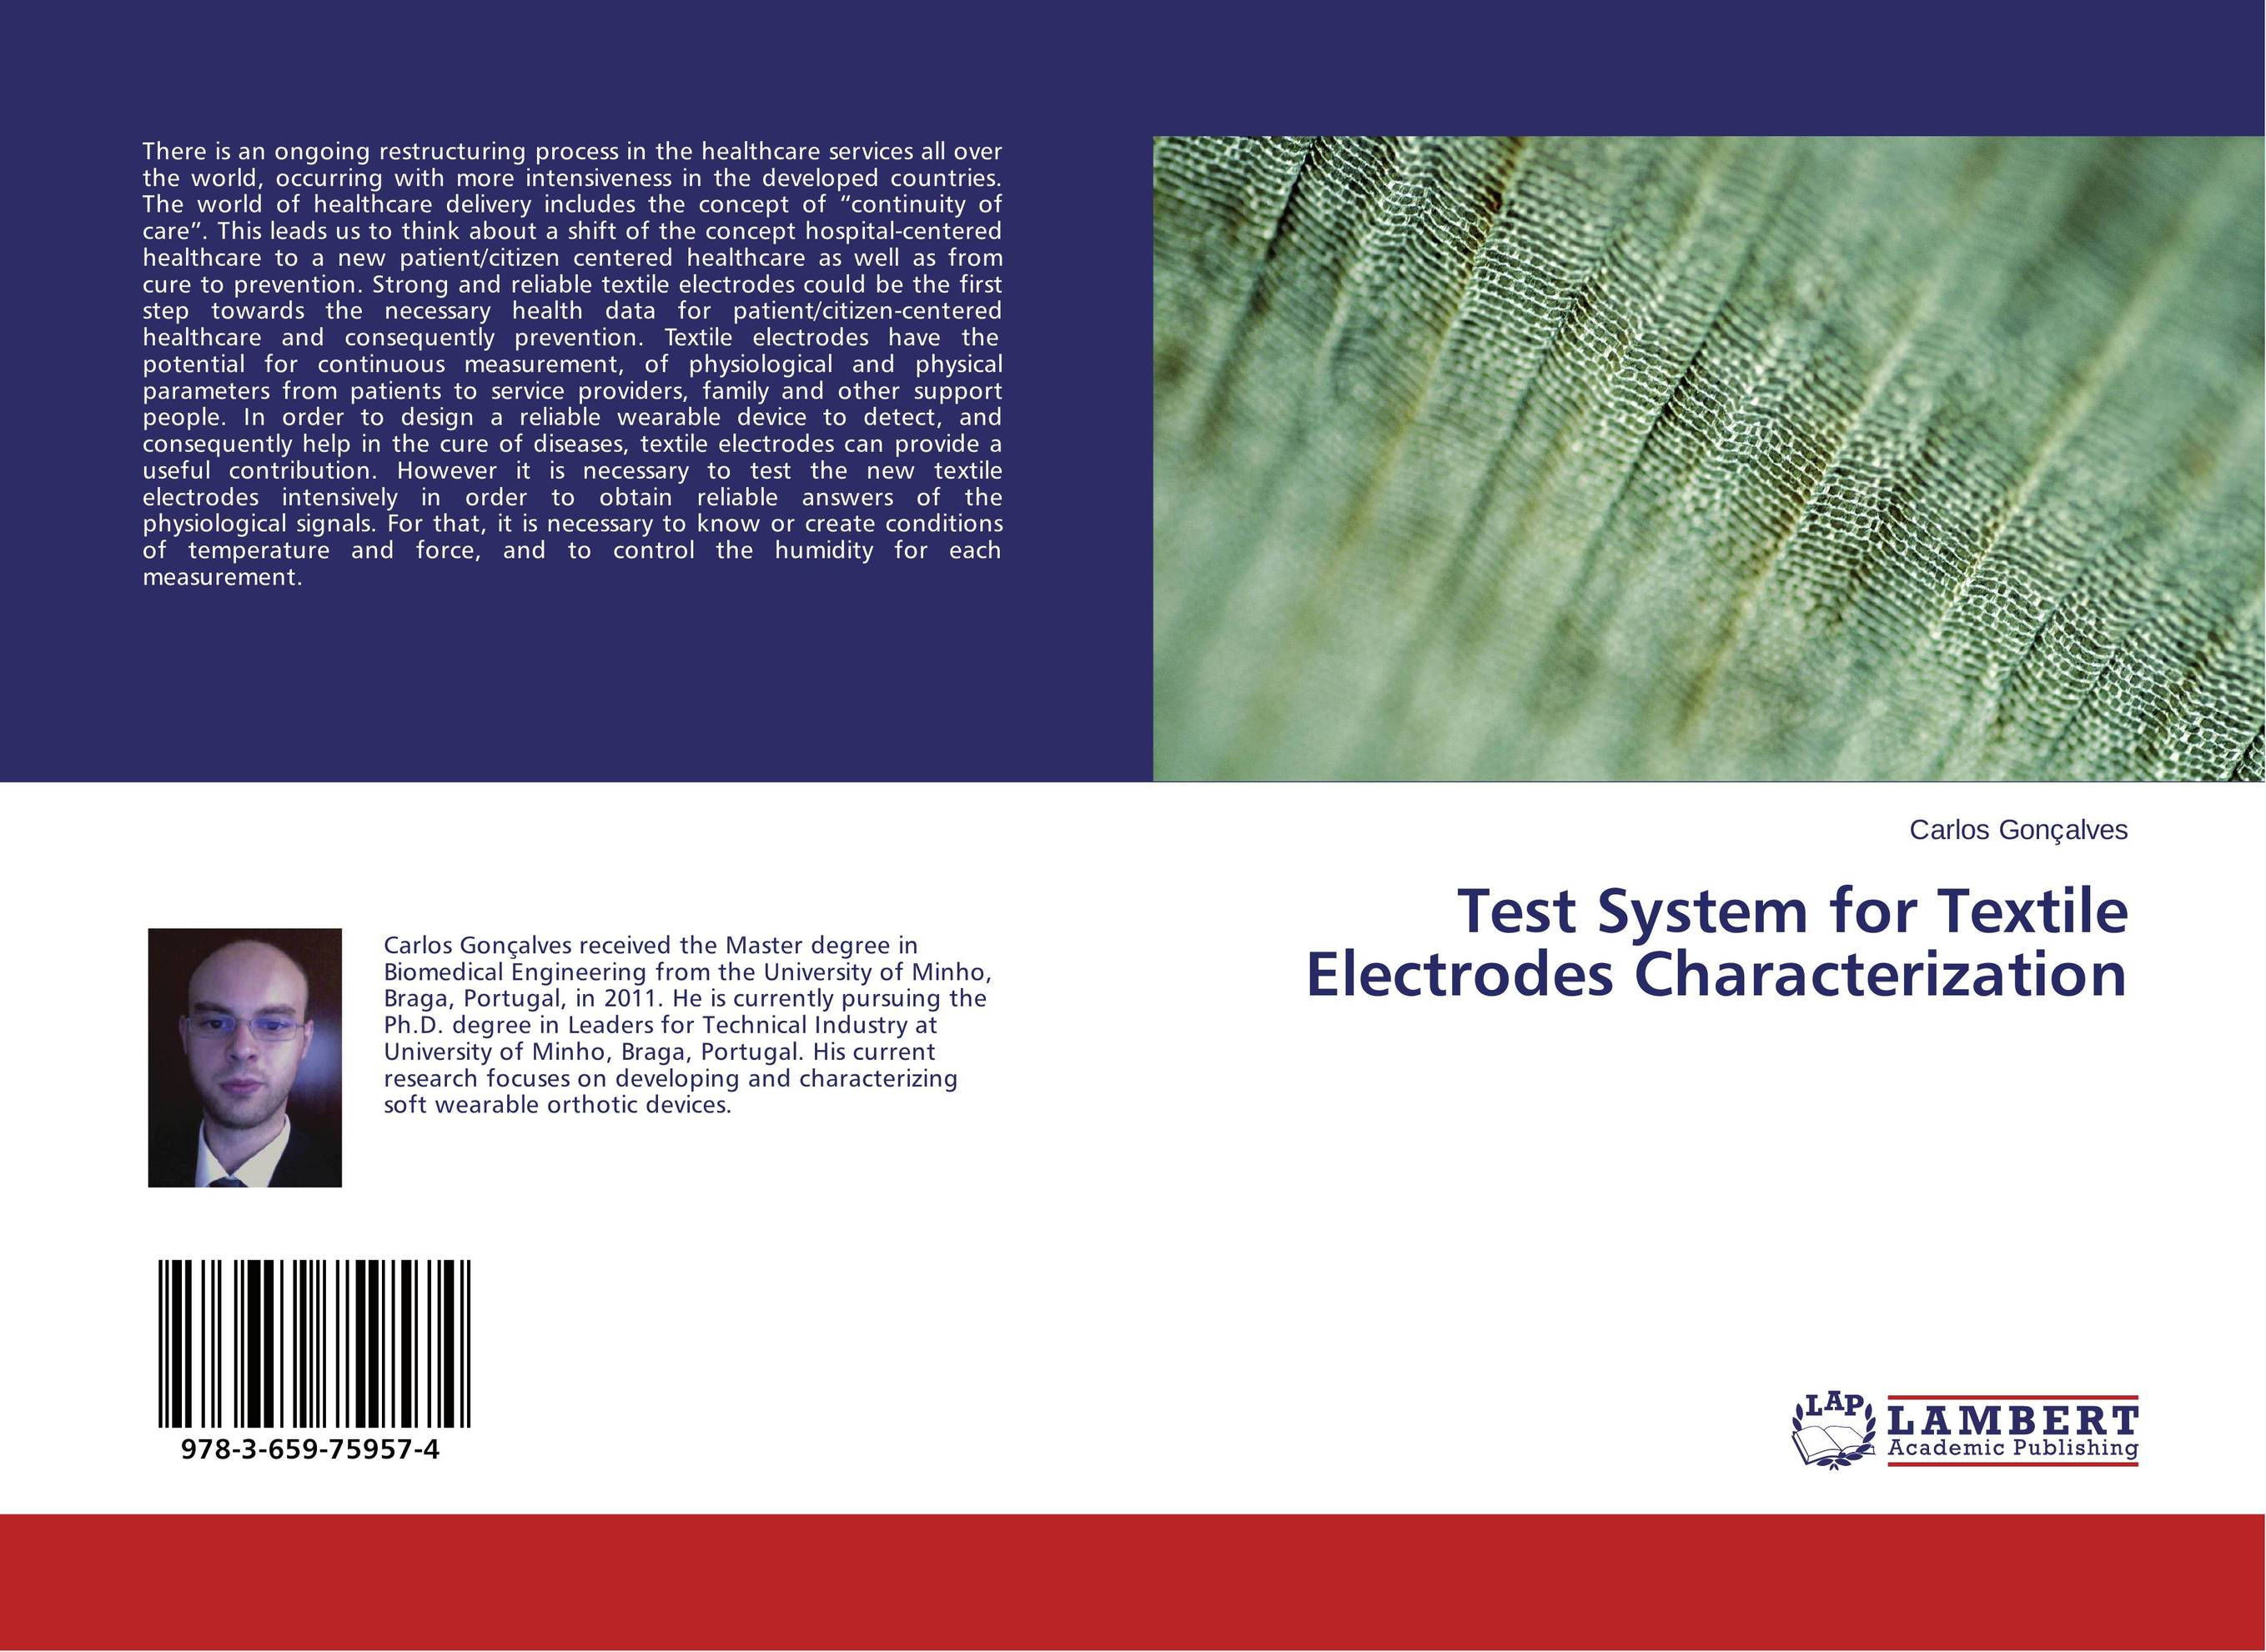 Test System for Textile Electrodes Characterization